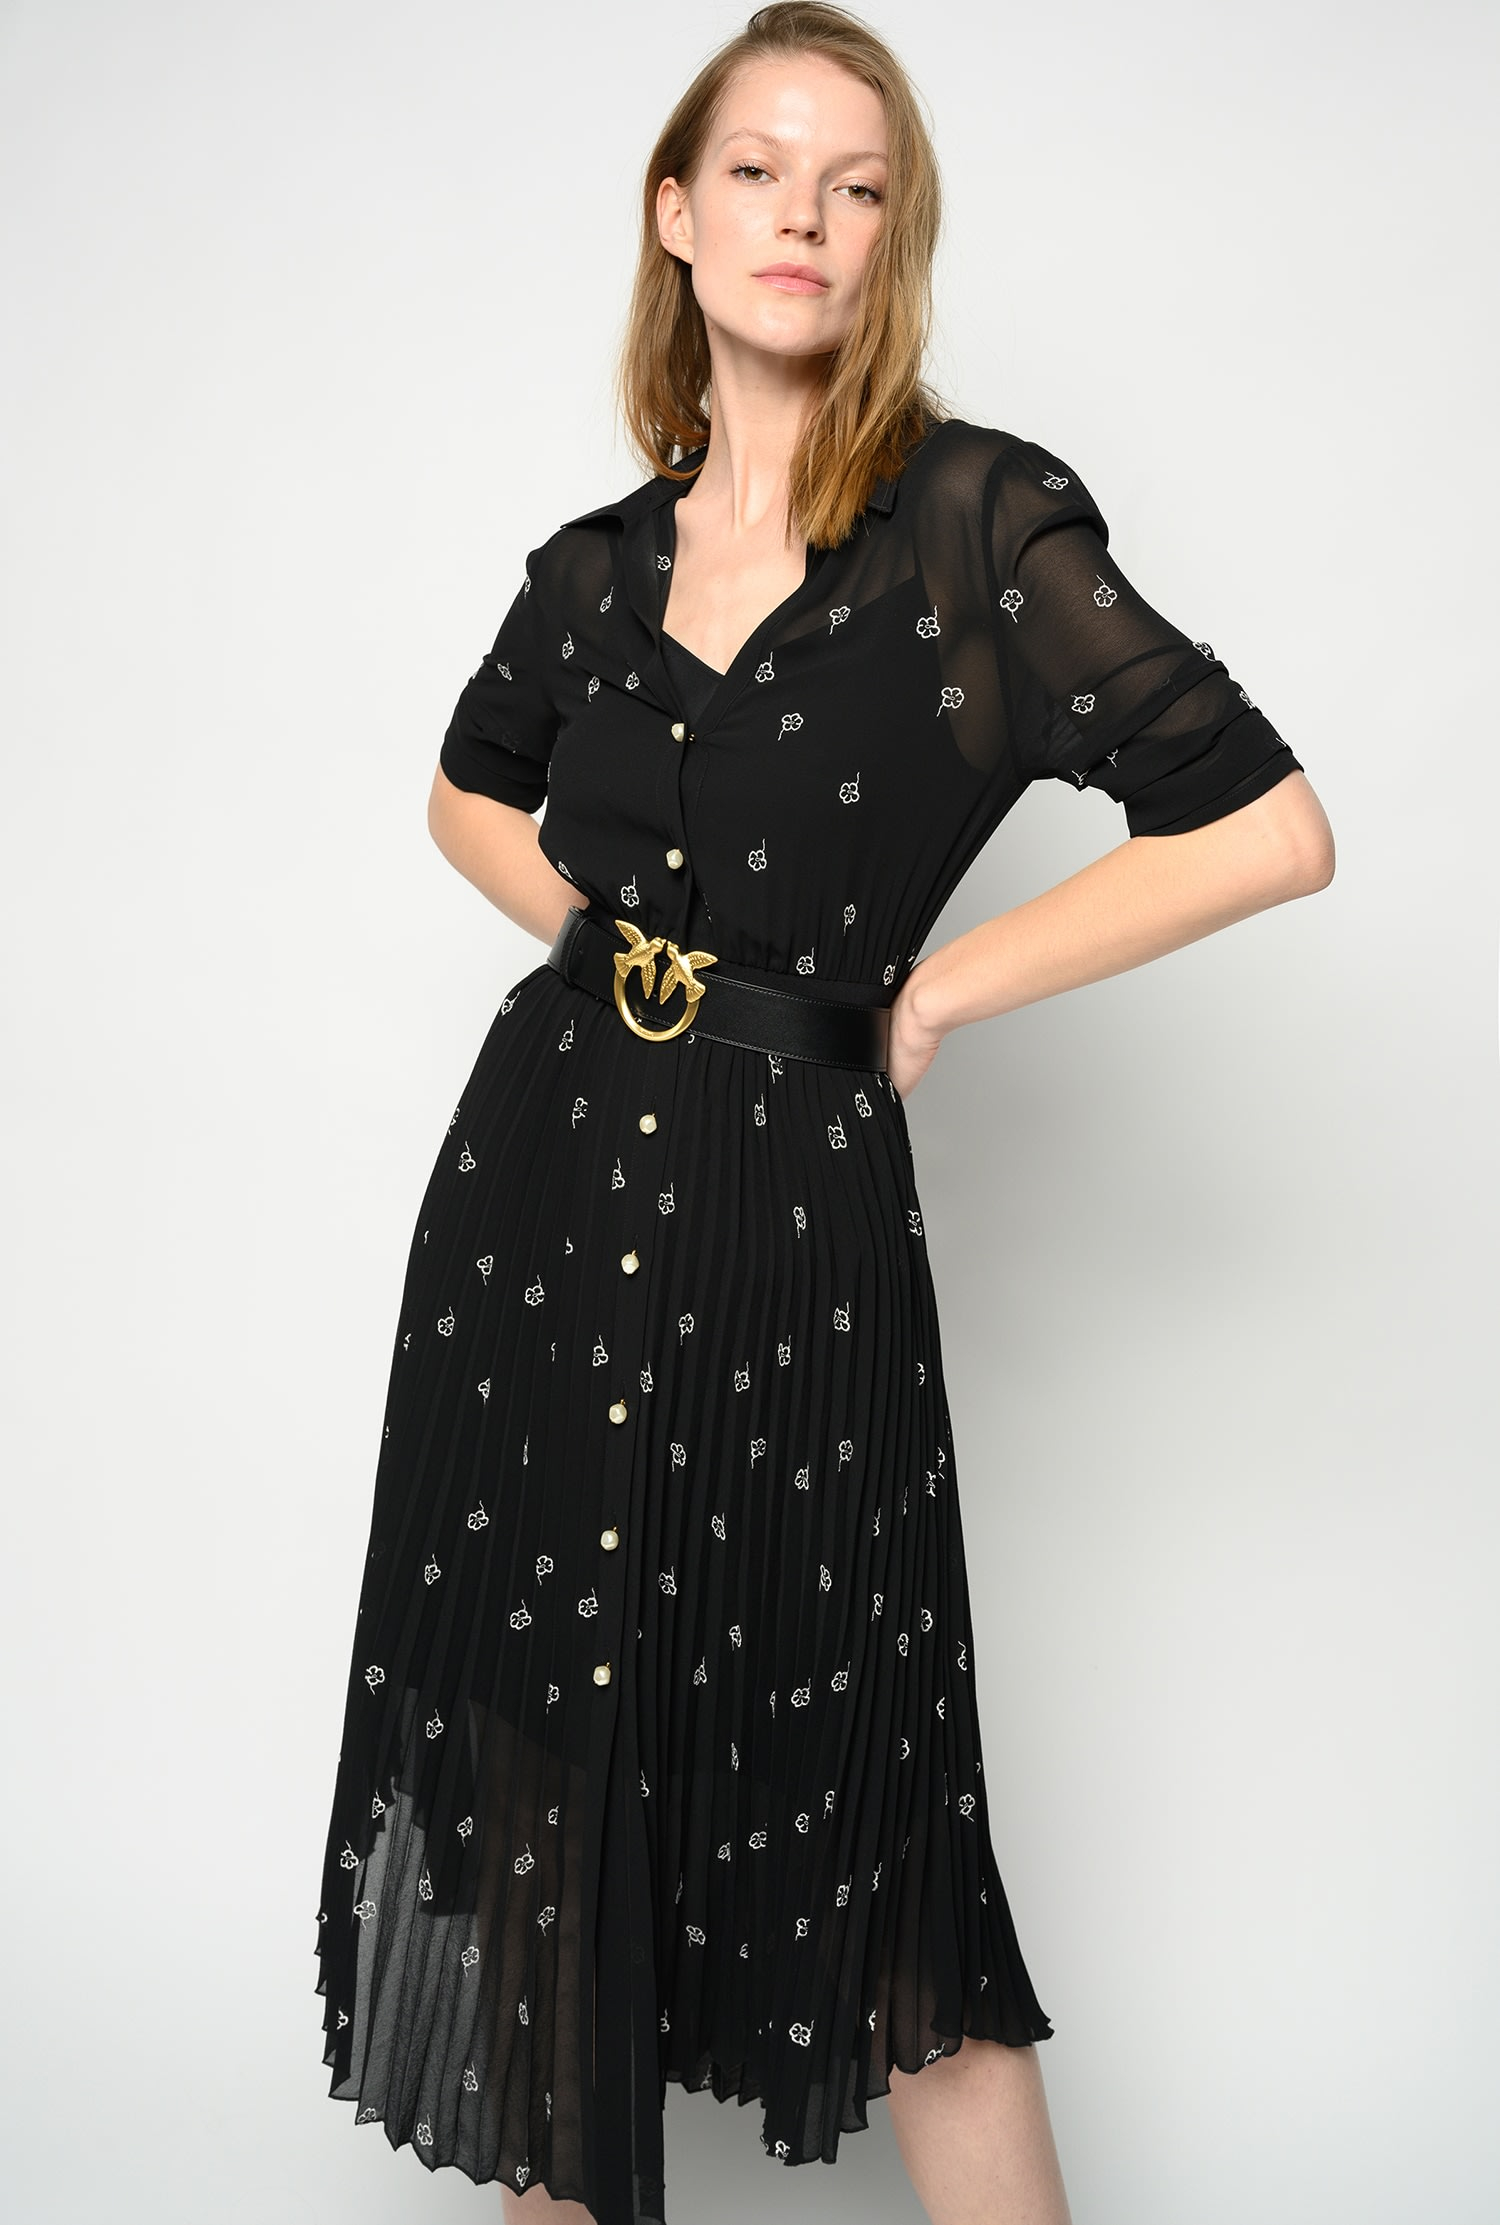 SHOPPING ON LINE PINKO ABITO NOTO NEW COLLECTION WOMEN'S SPRING SUMMER 2021